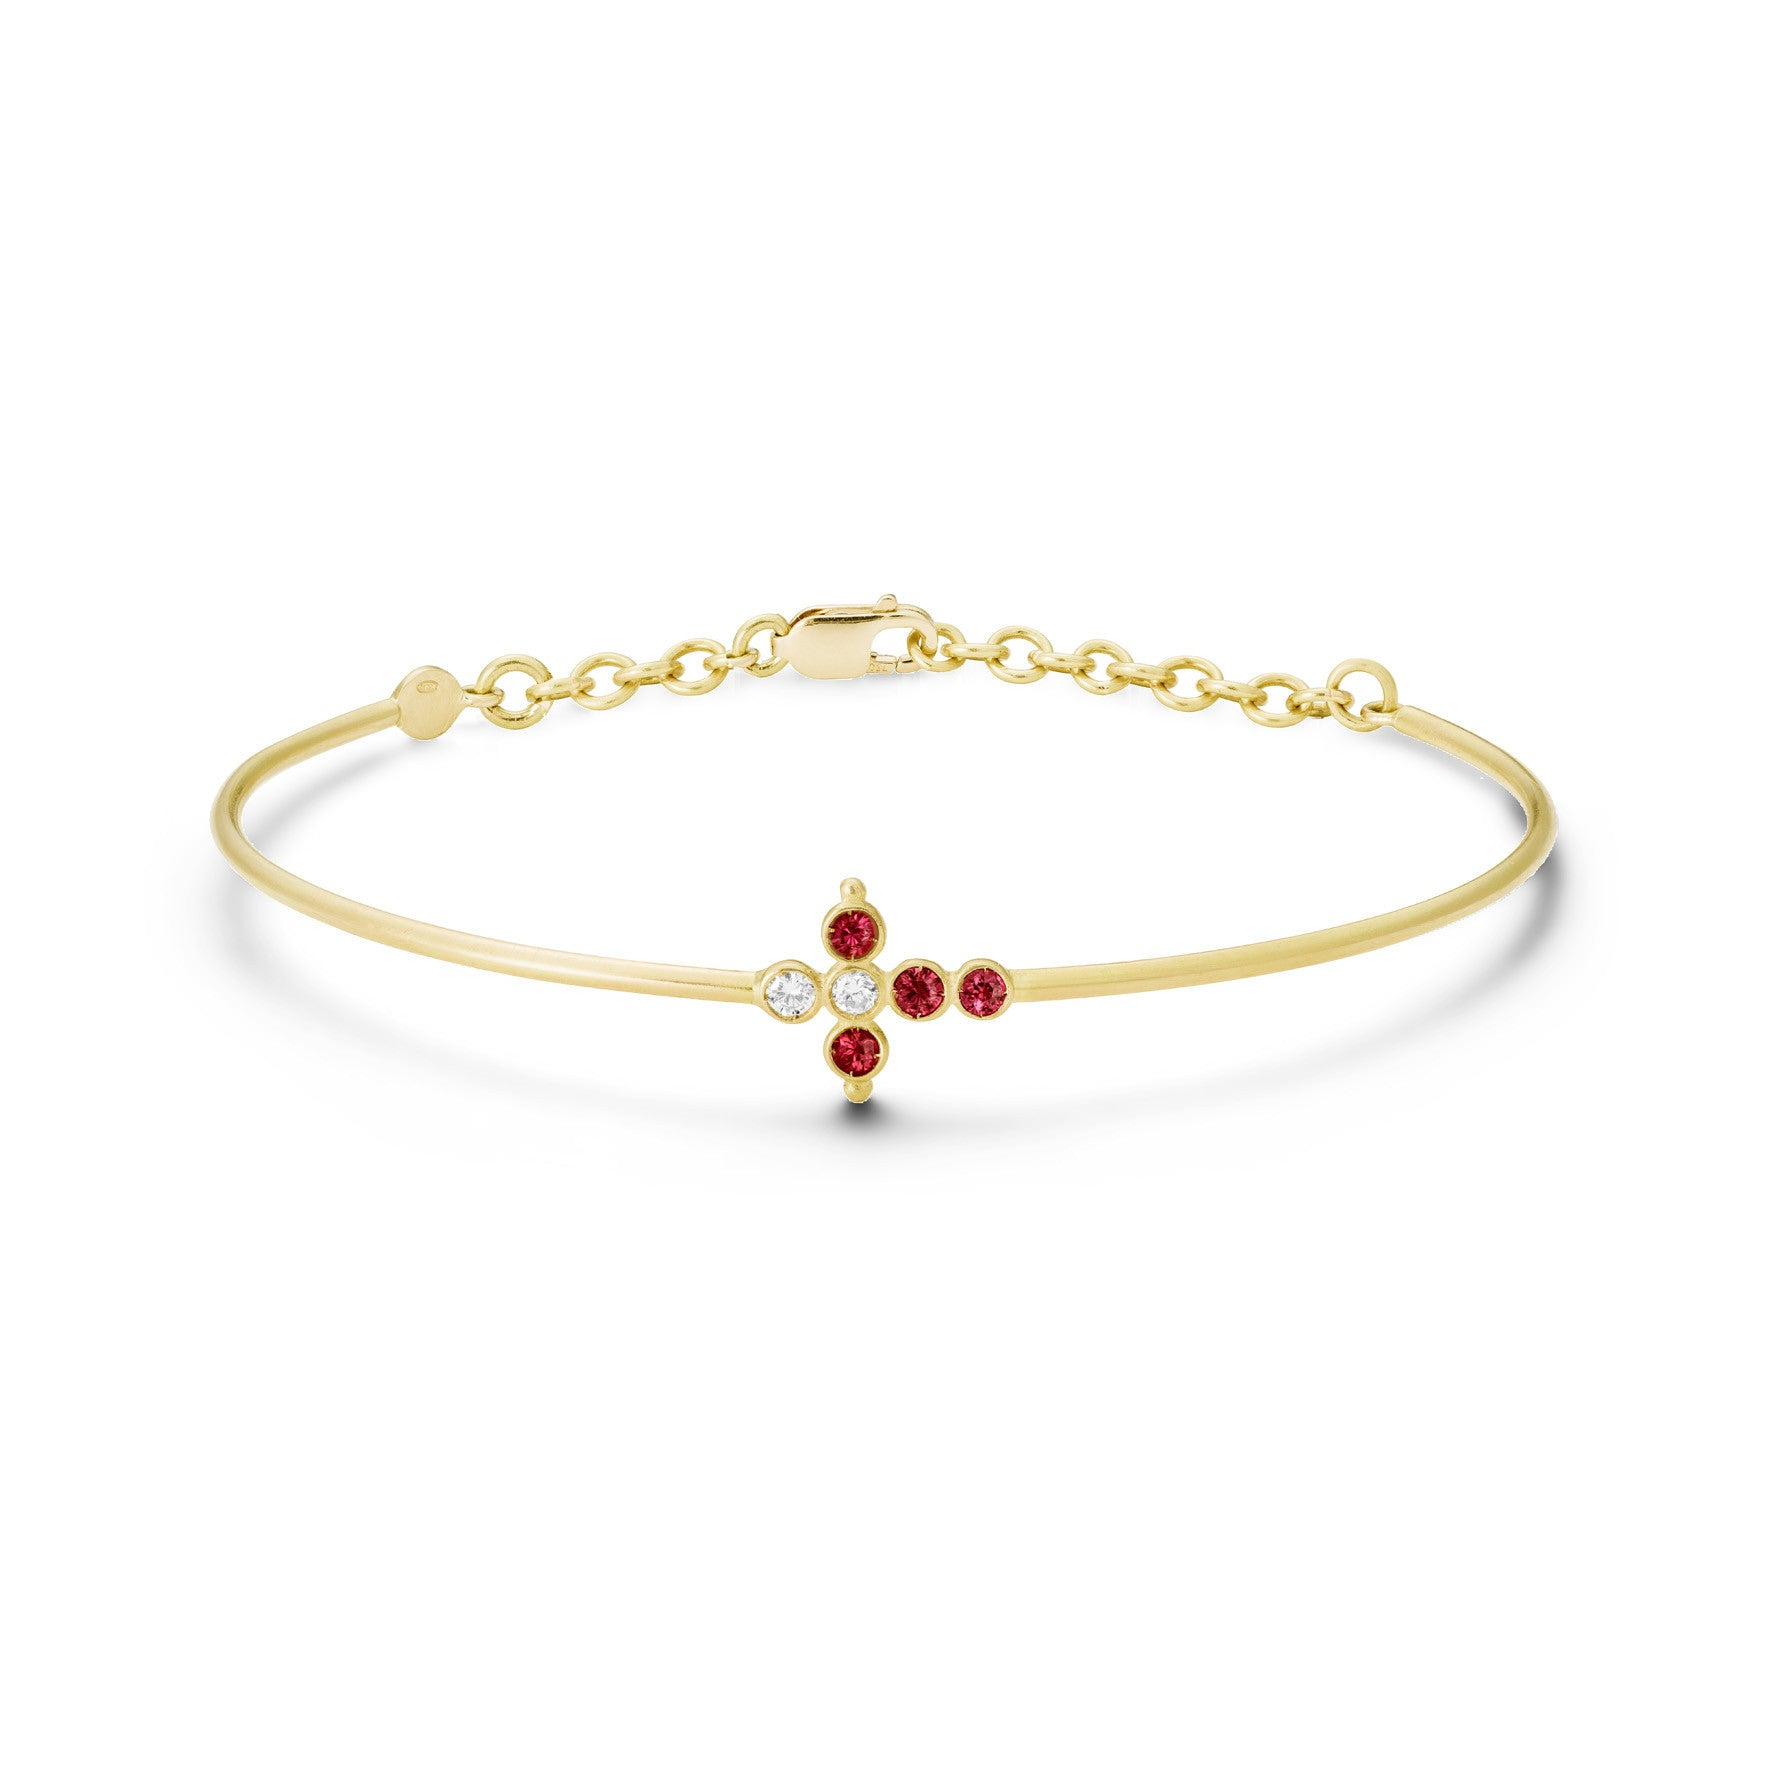 Bracelet Petit AA Or jaune, Rubis et Diamants